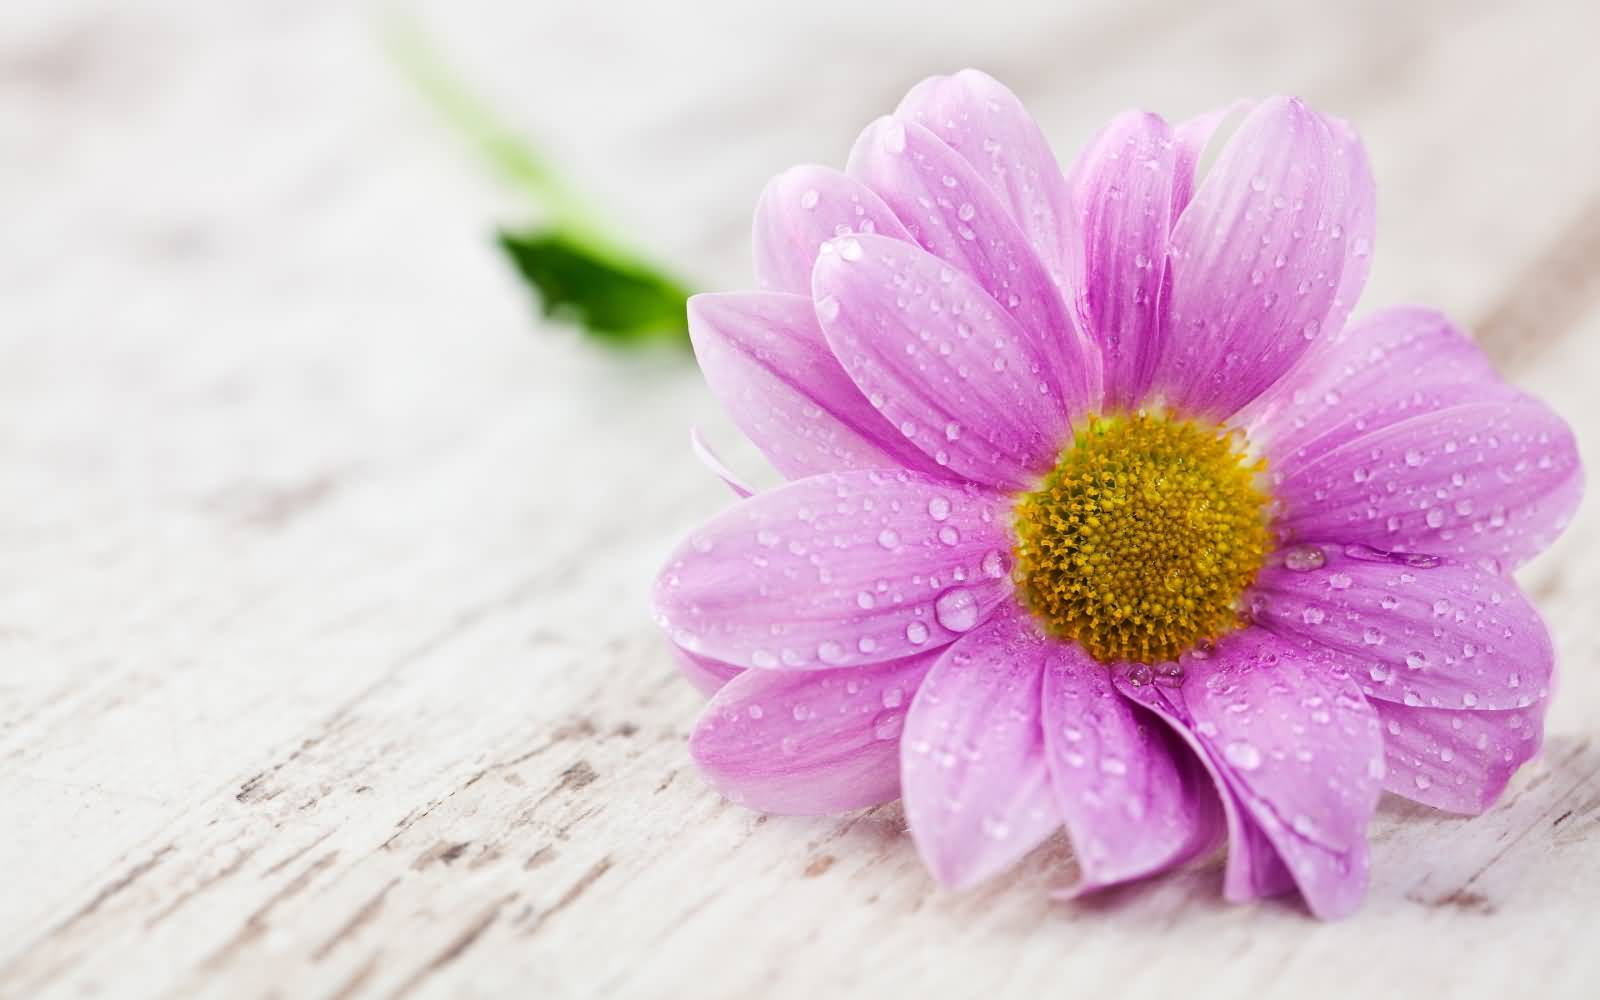 50 Most Beautiful Flower Pictures And Photos